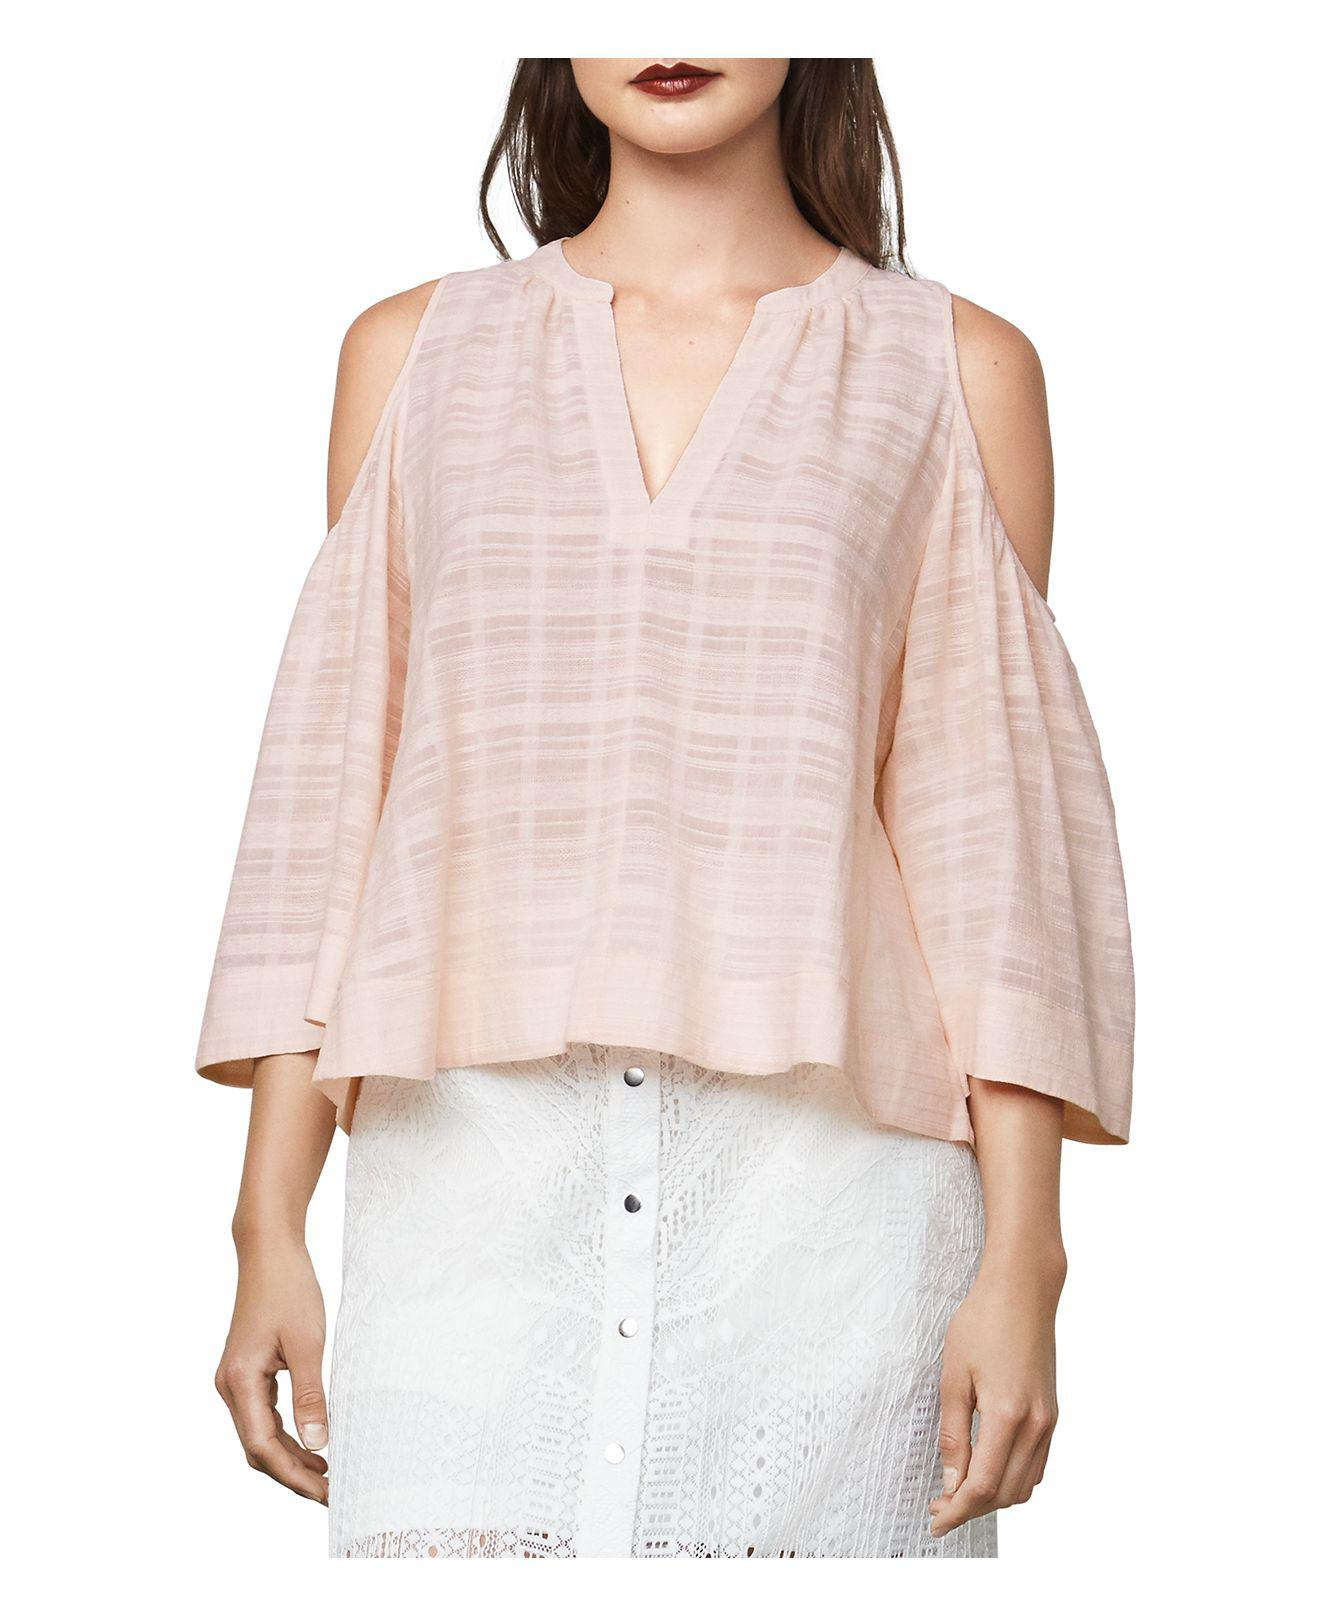 31c3ad2365c916 Lyst - BCBGMAXAZRIA Elin Cold-shoulder Bell-sleeve Top in Pink